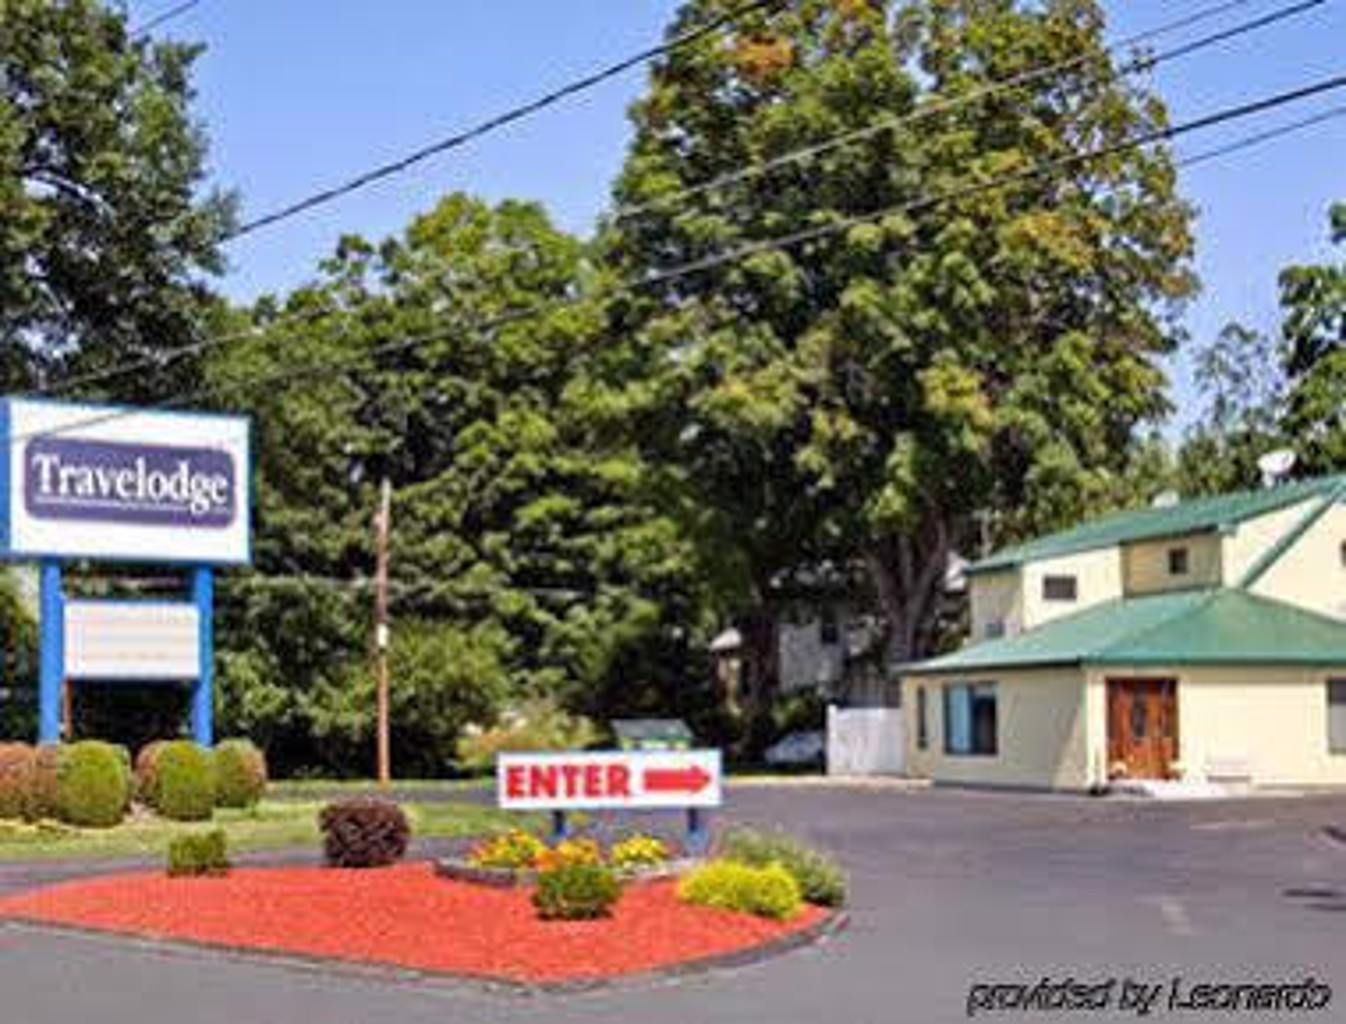 Gallery image of Travelodge West Springfield